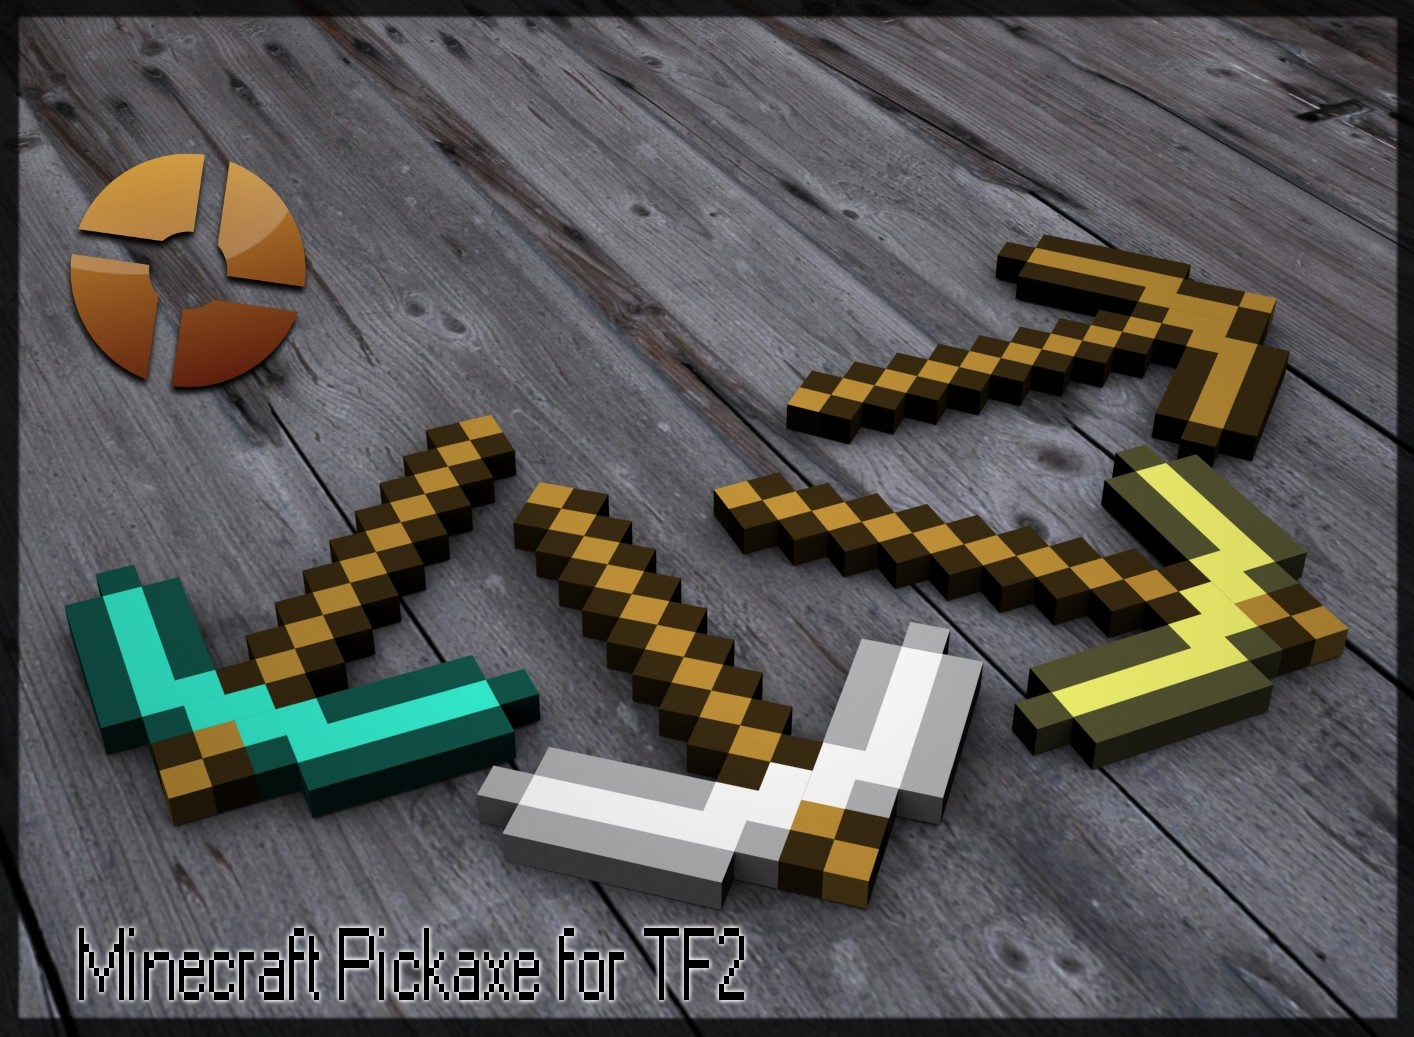 Screenshot 2 of team fortress 2 skin minecraft pickaxe